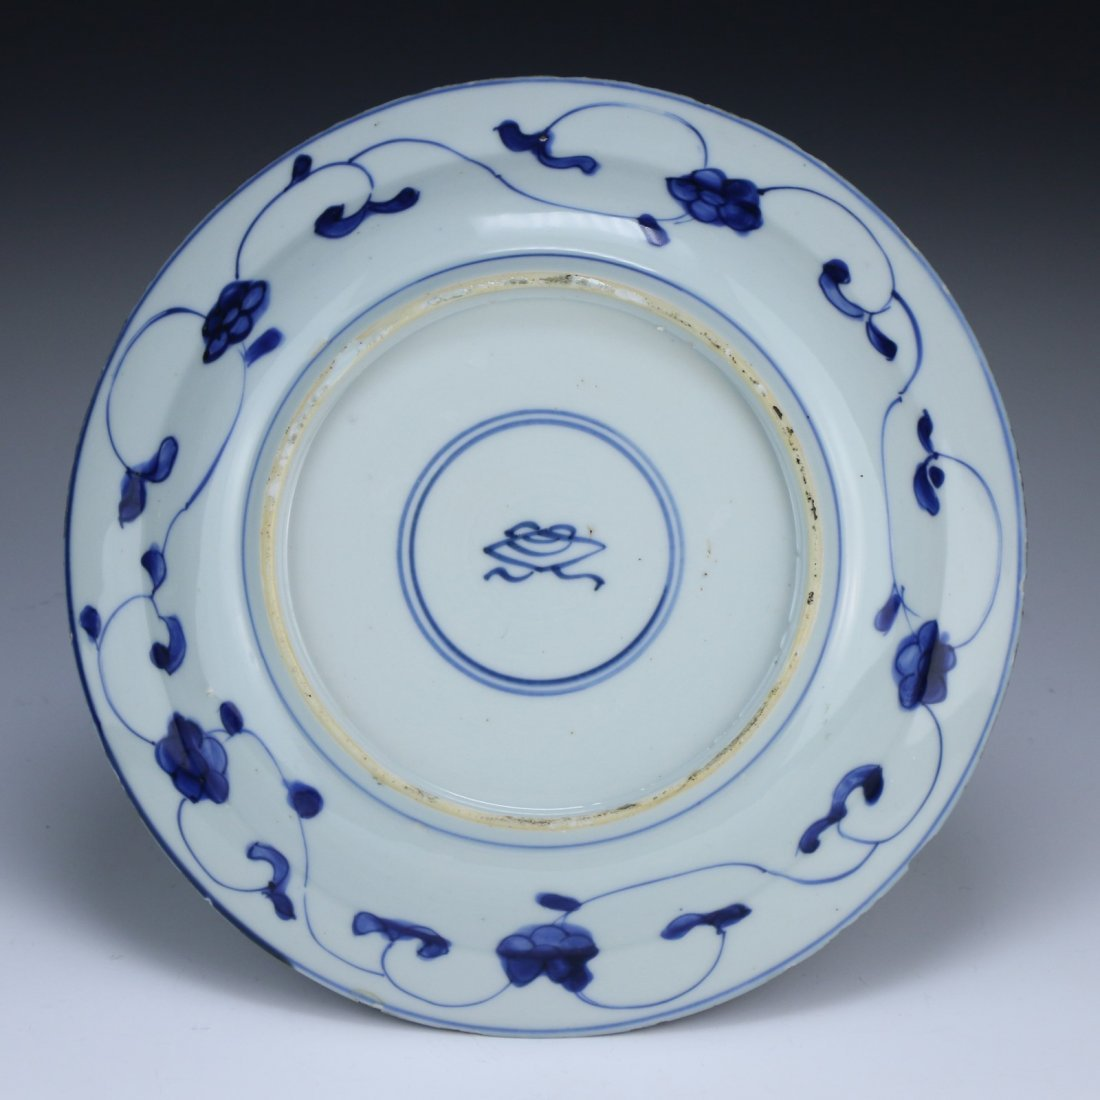 A Chinese Blue And White 'Kraak Porselein' Dish - 3